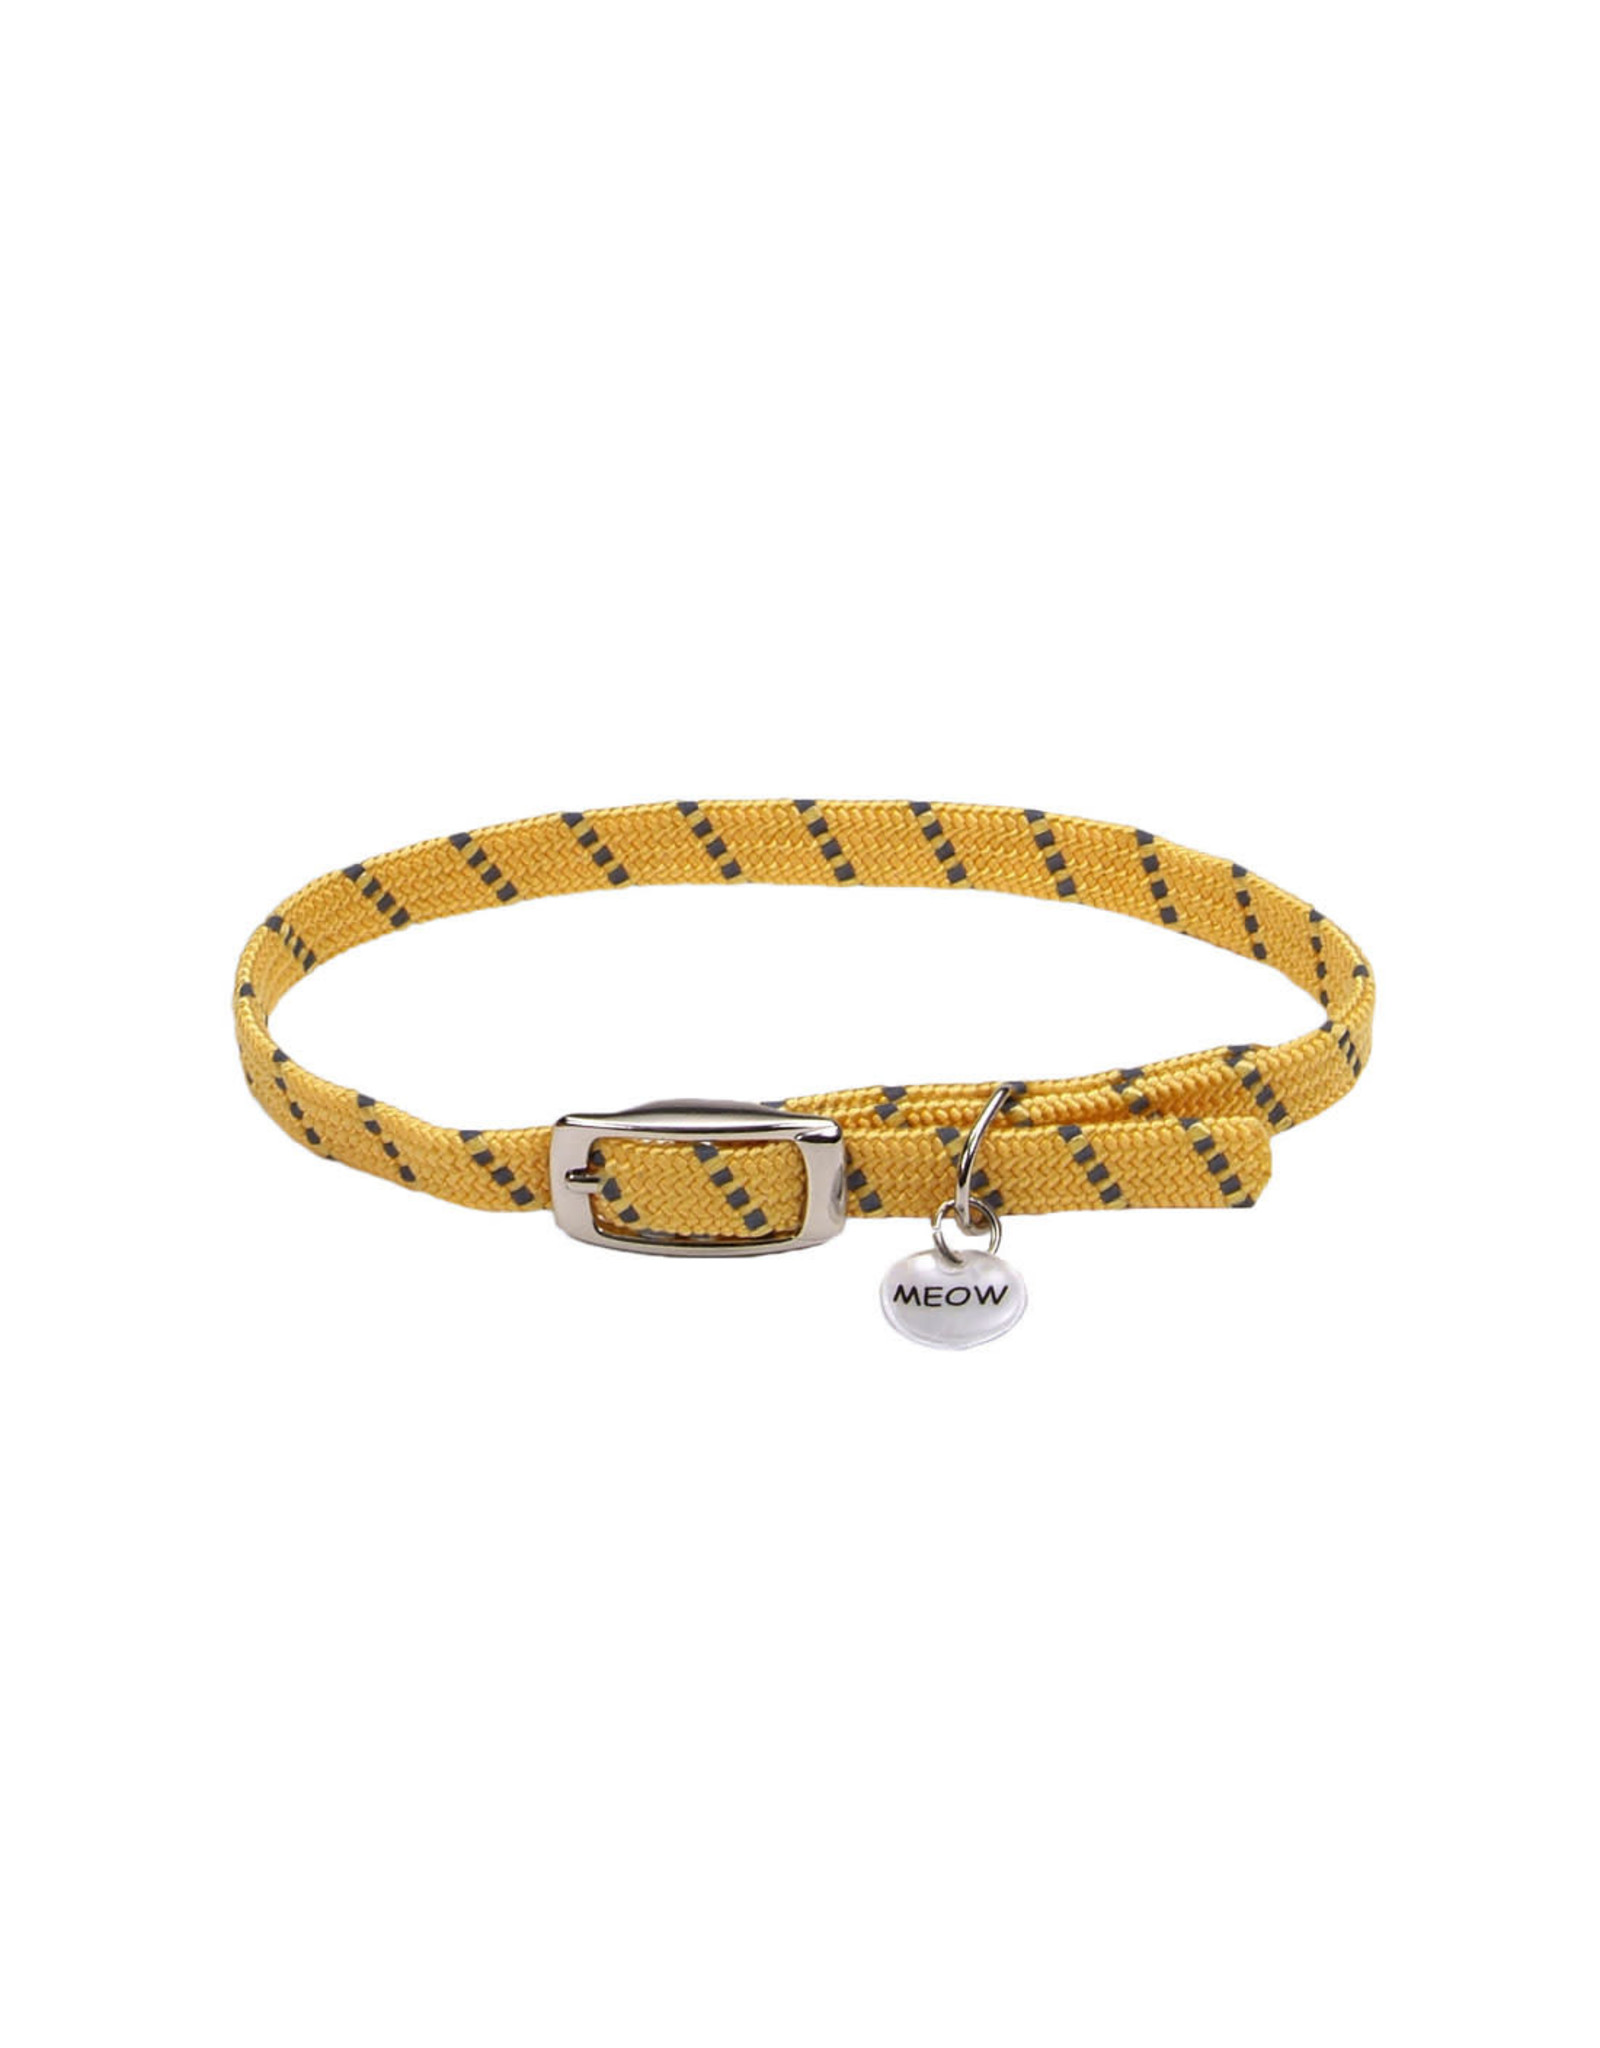 "Coastal Coastal Elasta Cat Reflective/Stretch Collar - 10 "" Yellow"